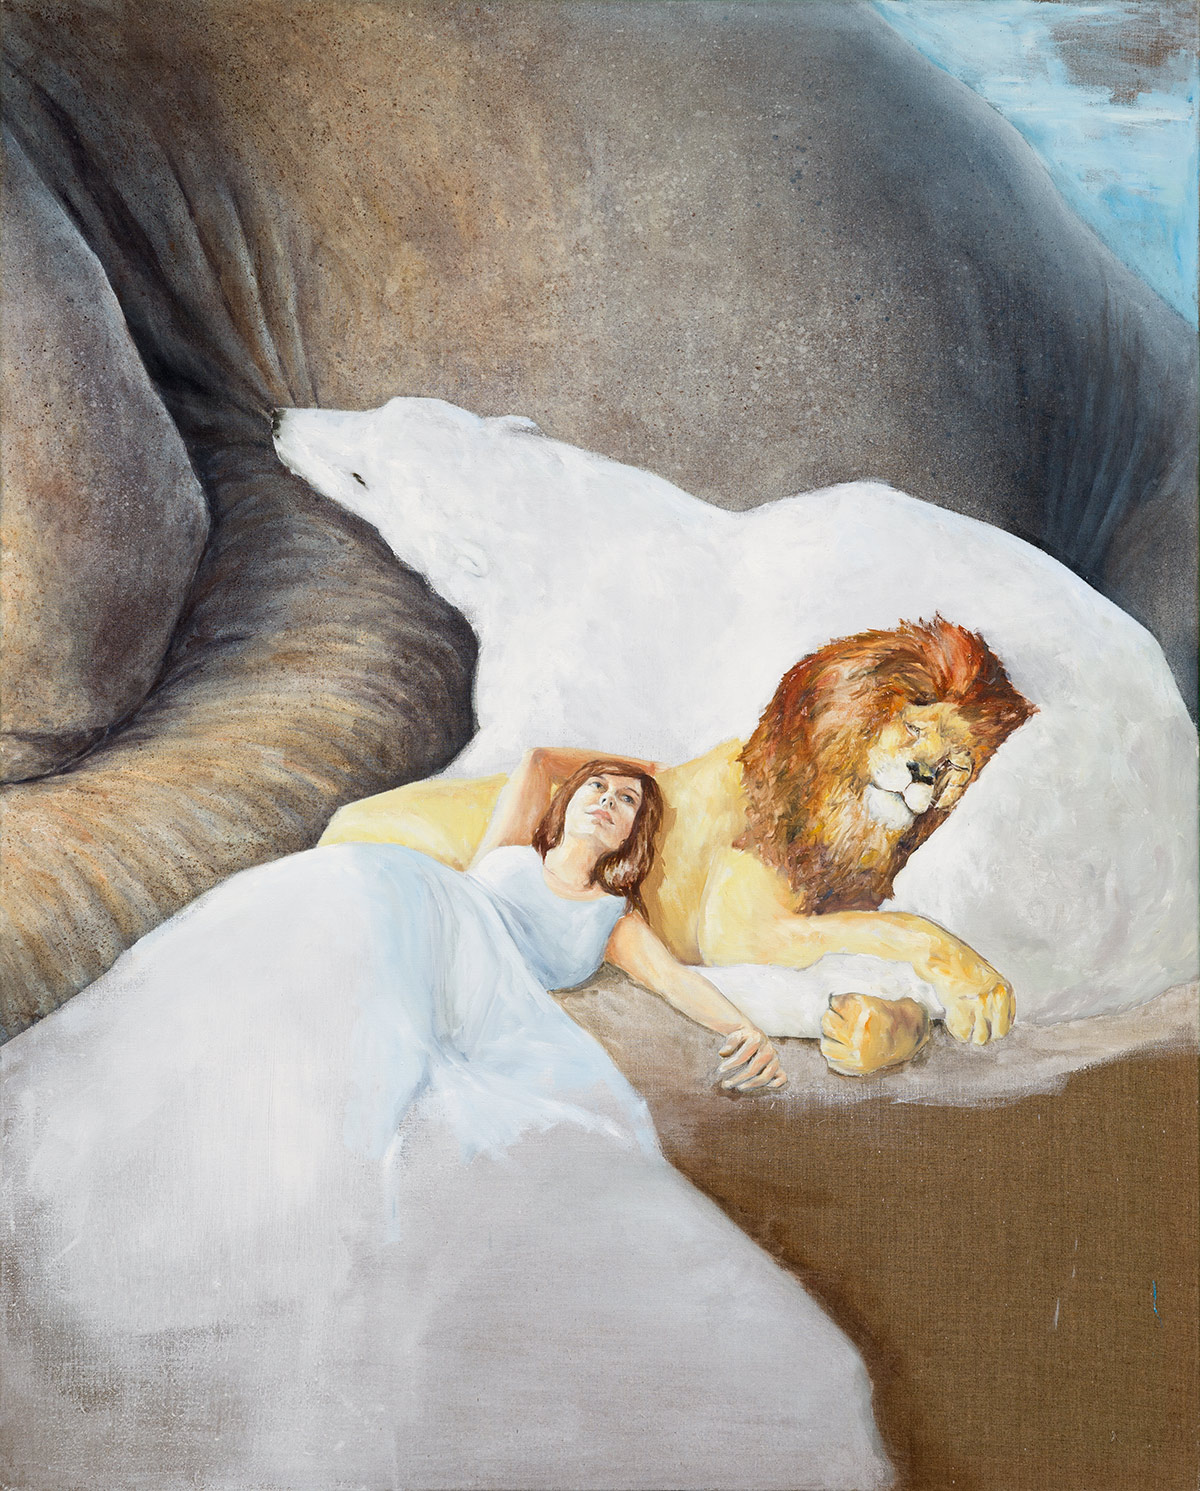 Self-Portrait with Dinosaur. 180x145 cm, olja på duk, 2012